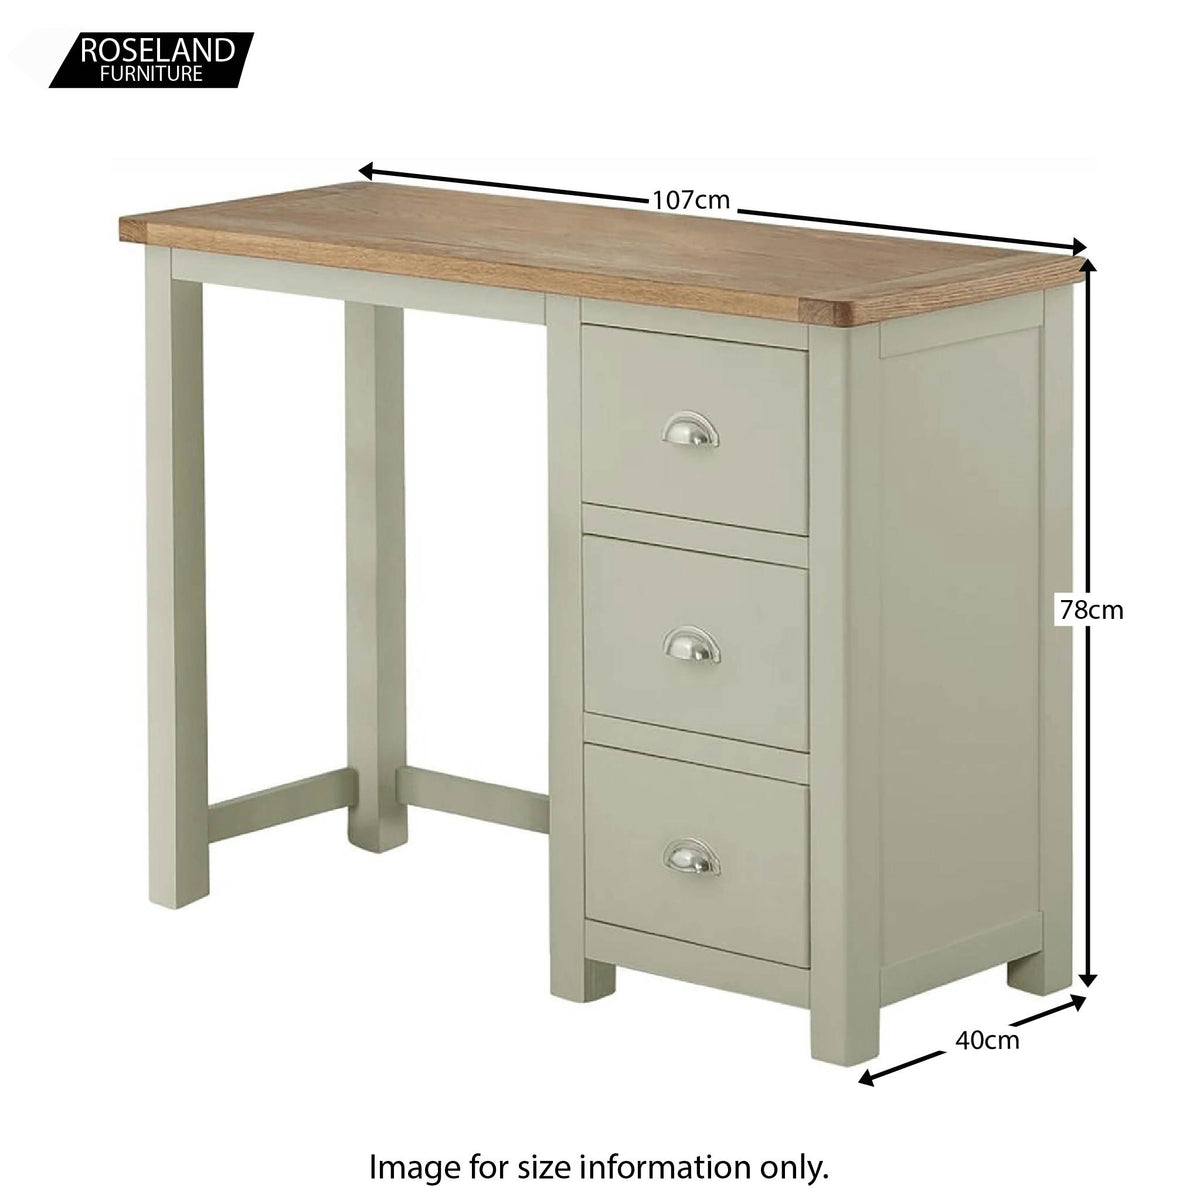 Padstow Grey Dressing Table with Drawers - Size Guide for Overall Unit